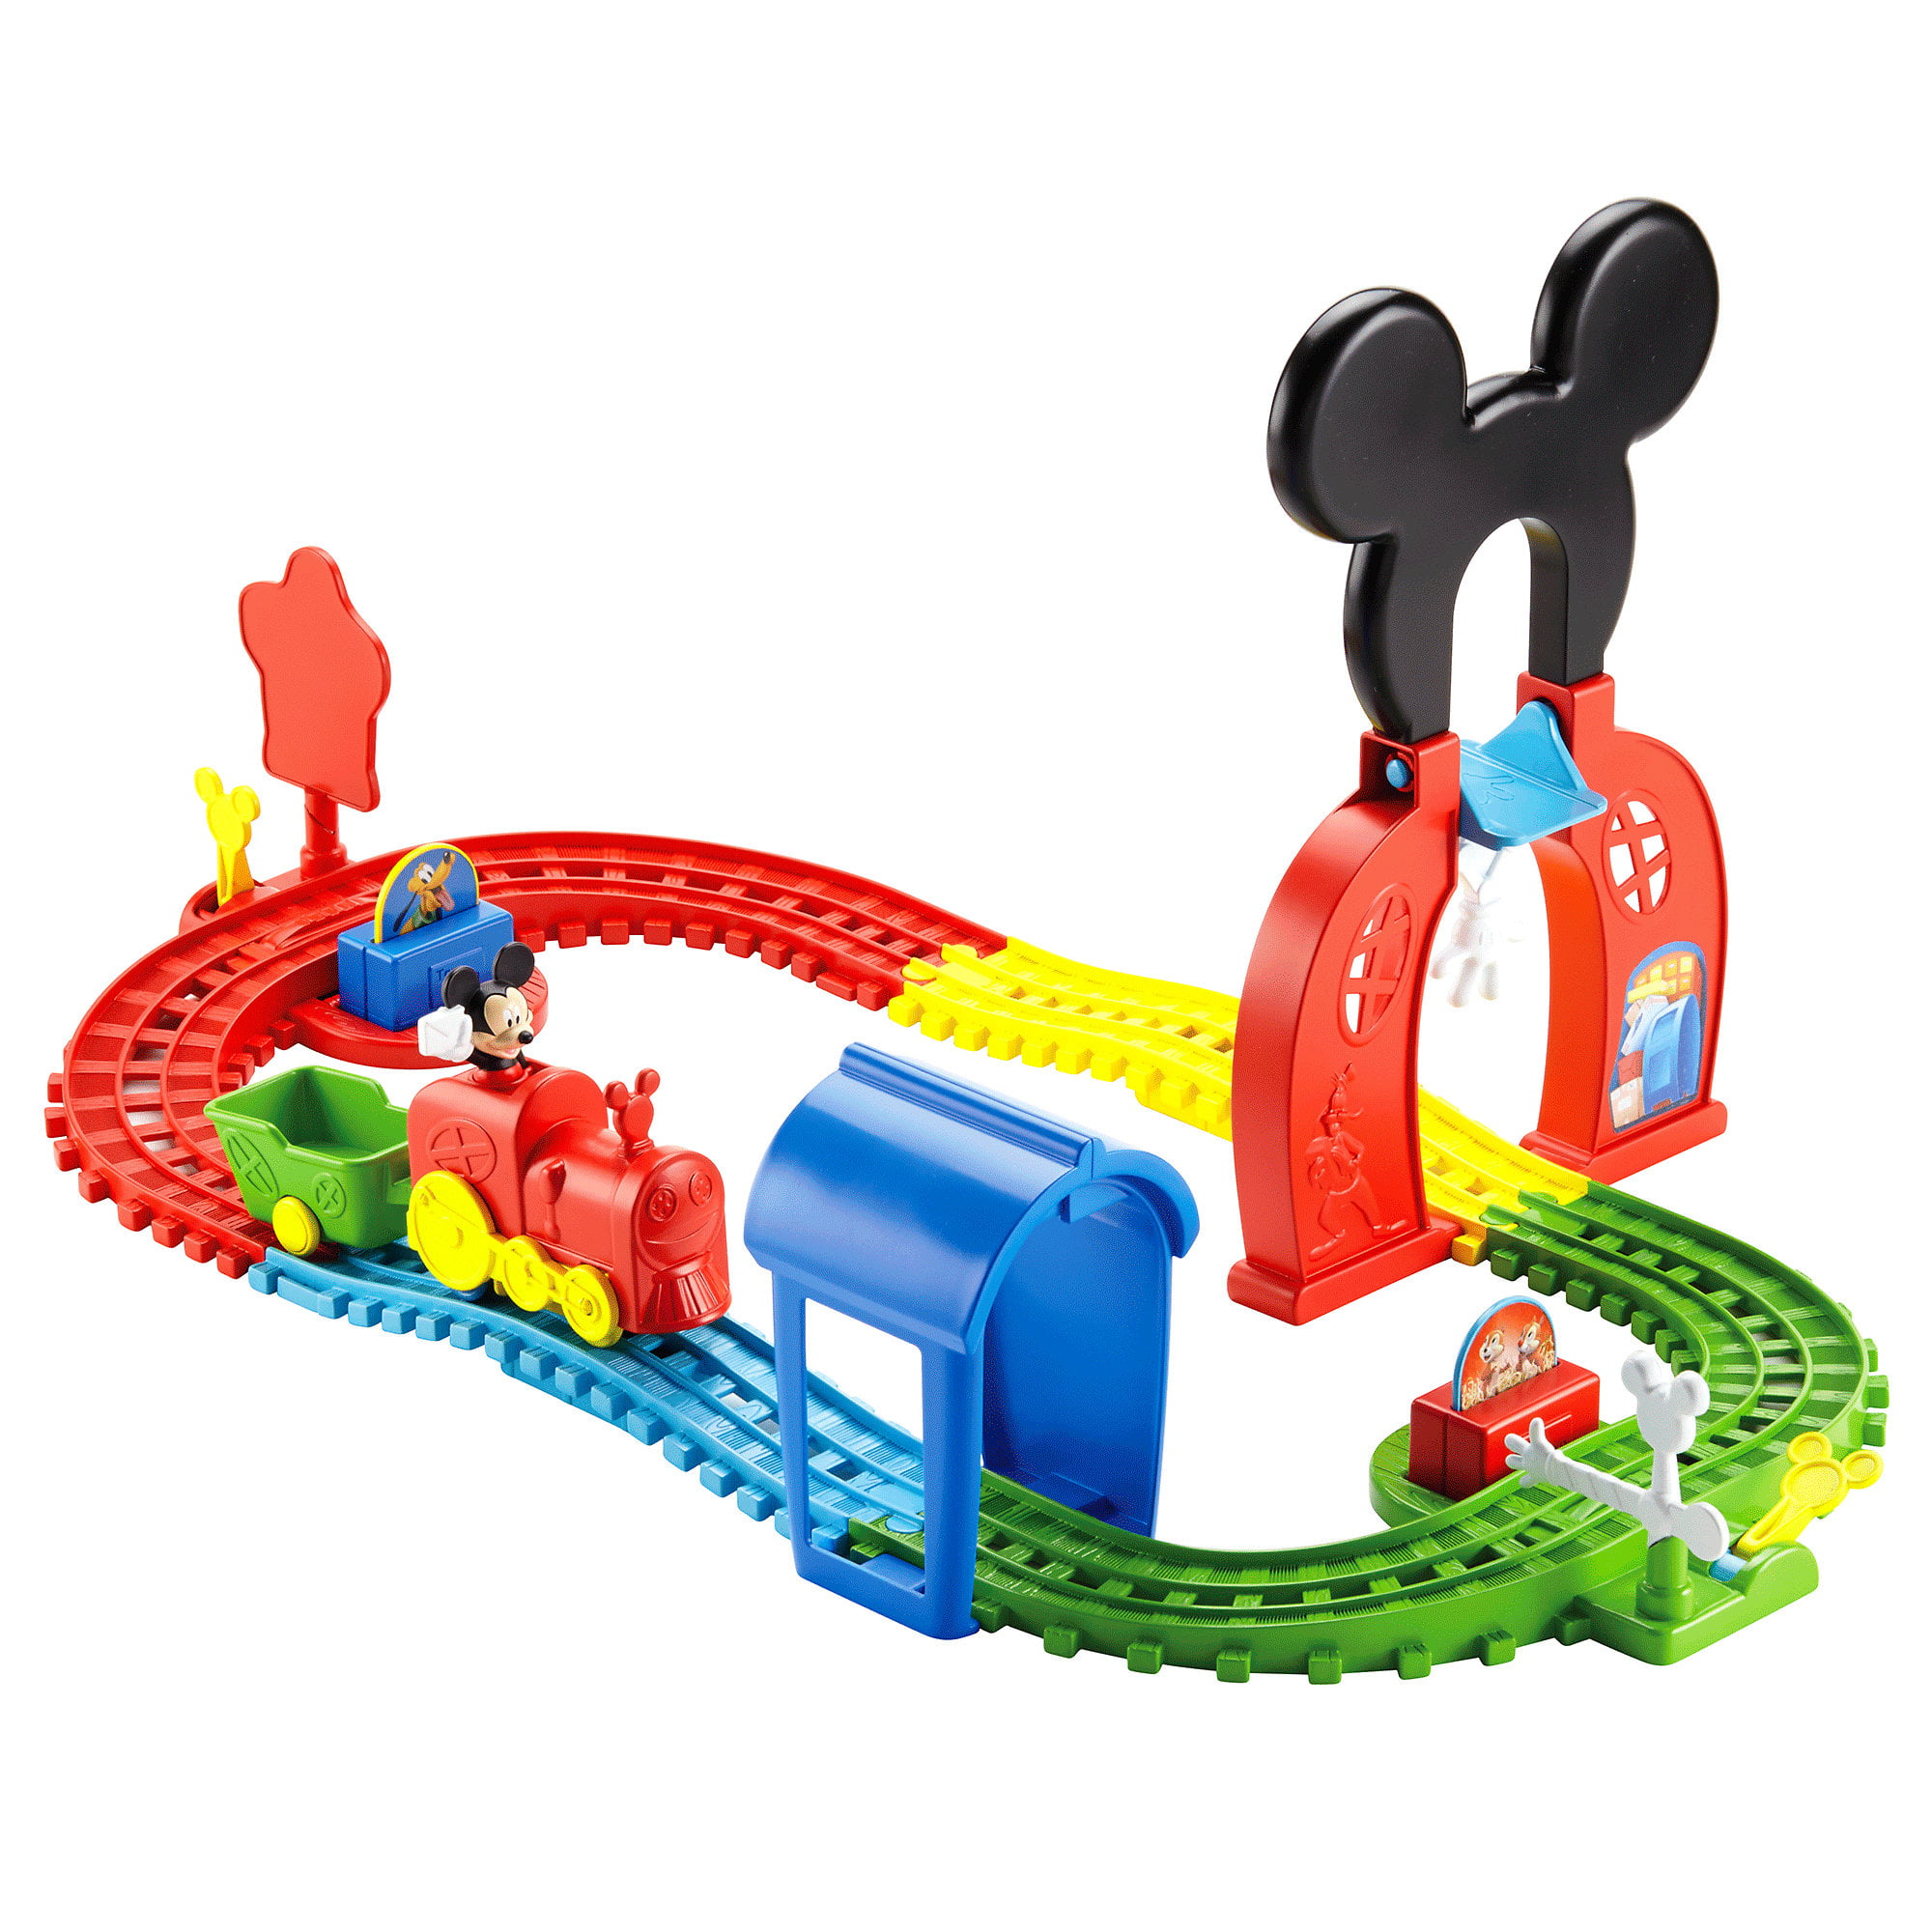 Fisher Price Disney Mickey Mouse Clubhouse � Mouska Train Express Playset by FO SHAN CITY NANHAI MATTEL